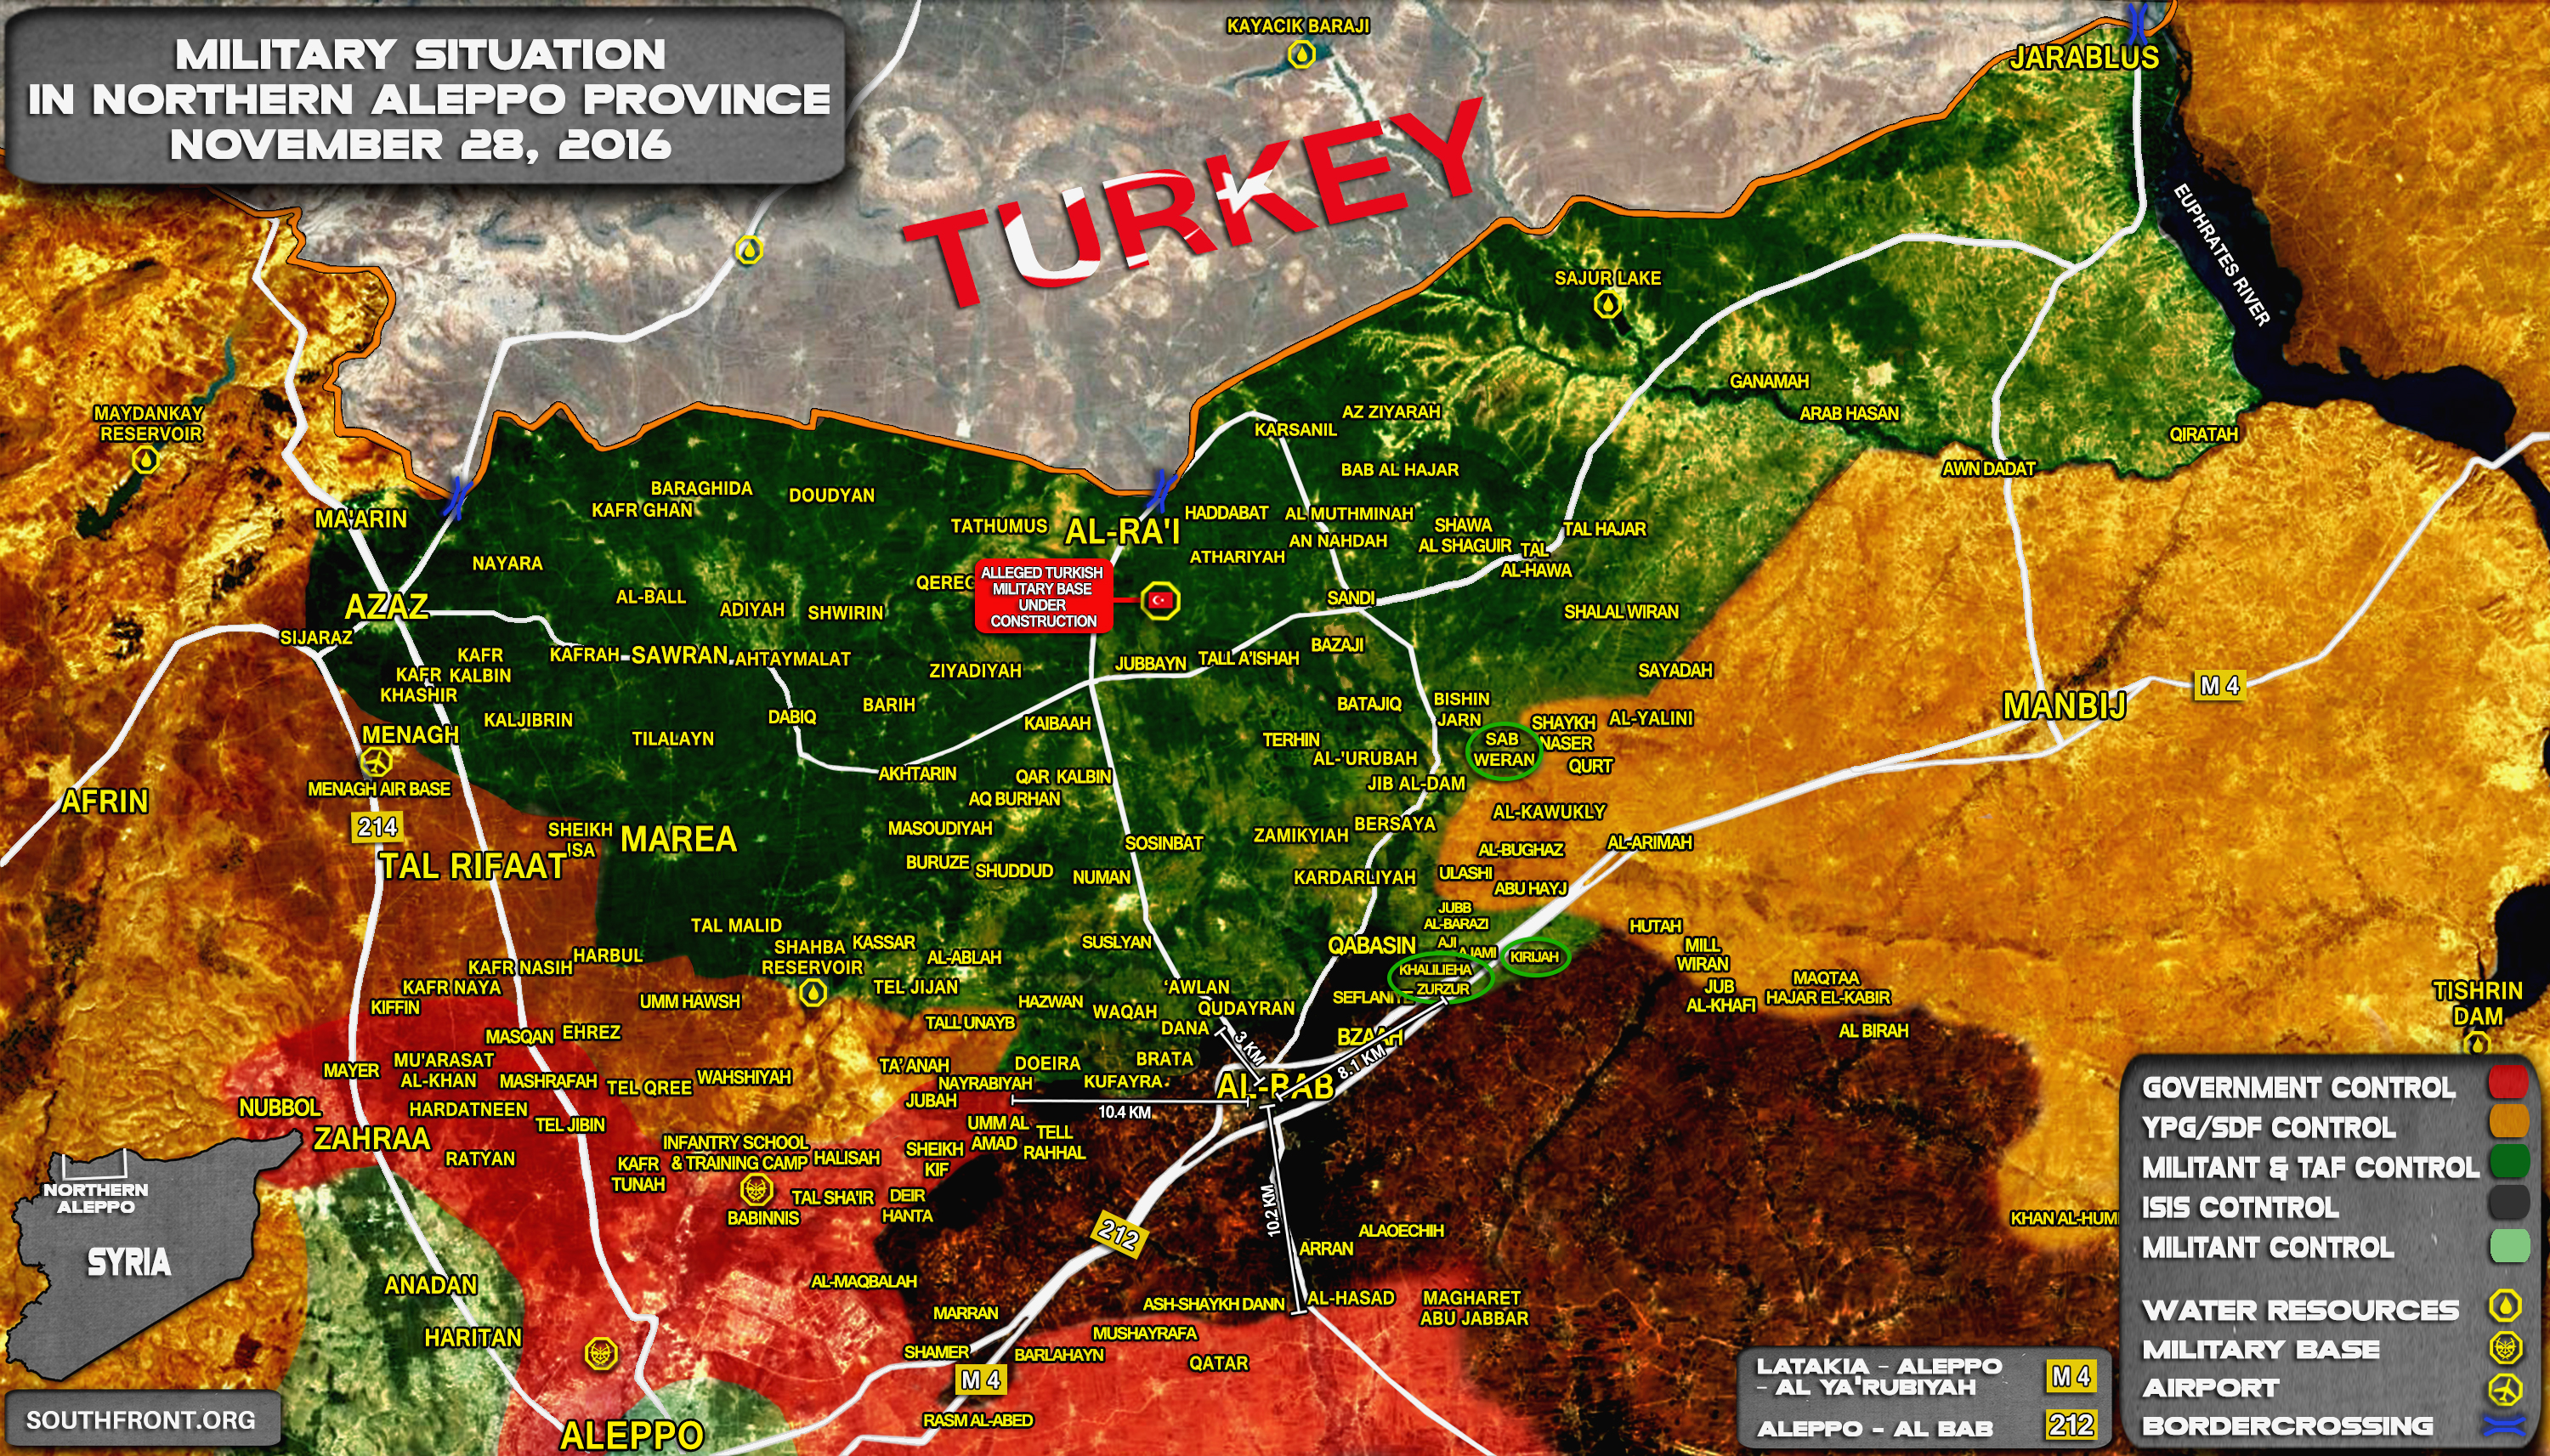 Syria Map Update: Military Situation in Northern Part of Aleppo Province on November 28, 2016